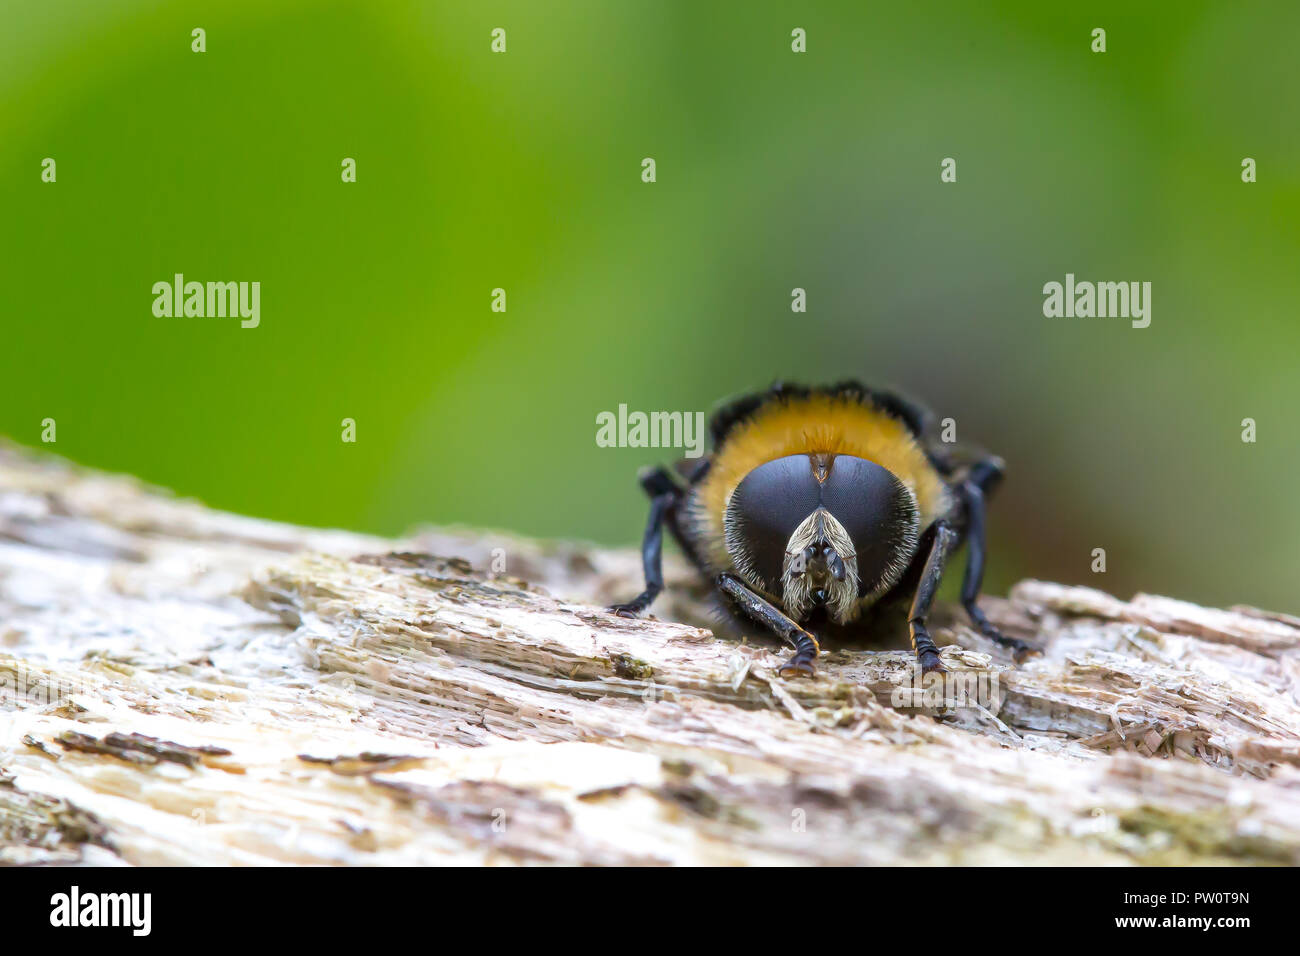 Detailed close up (macro photography) of wild bumblebee isolated on wood in natural setting. Front-facing bee shows two compound eyes in macro detail. - Stock Image